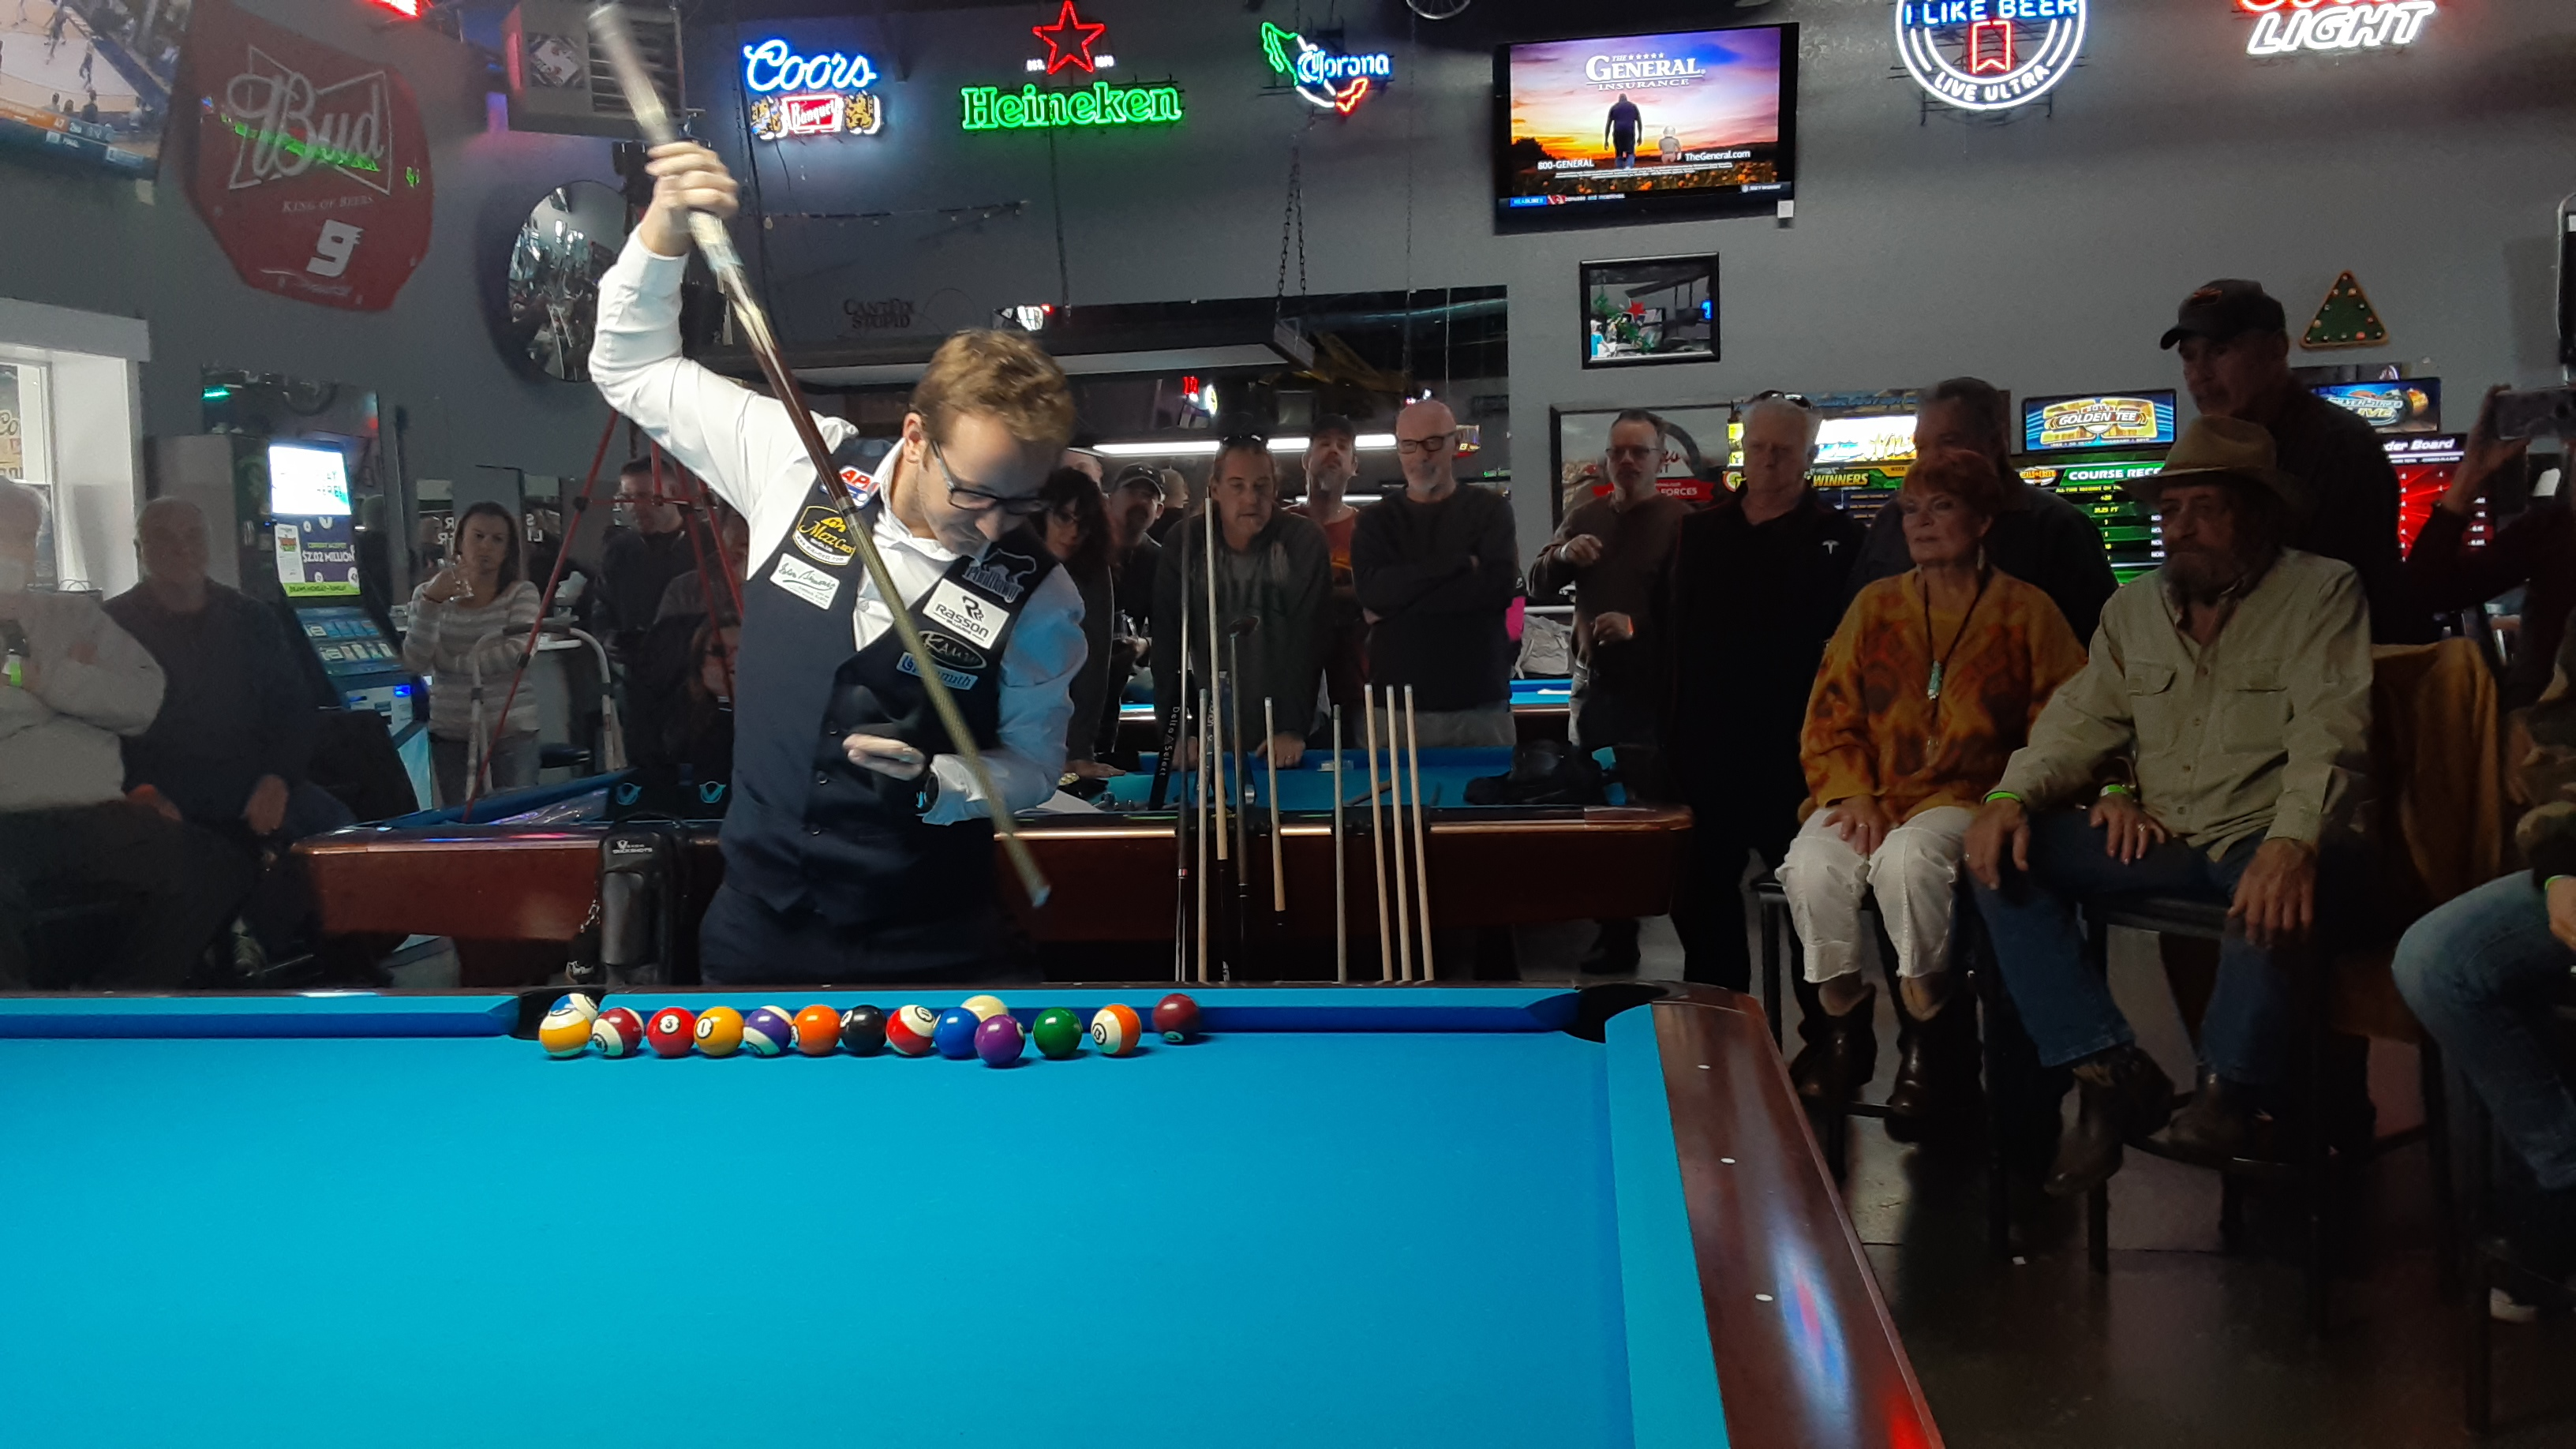 World class pool player wows crowd at Barefoot Bob's Billiards